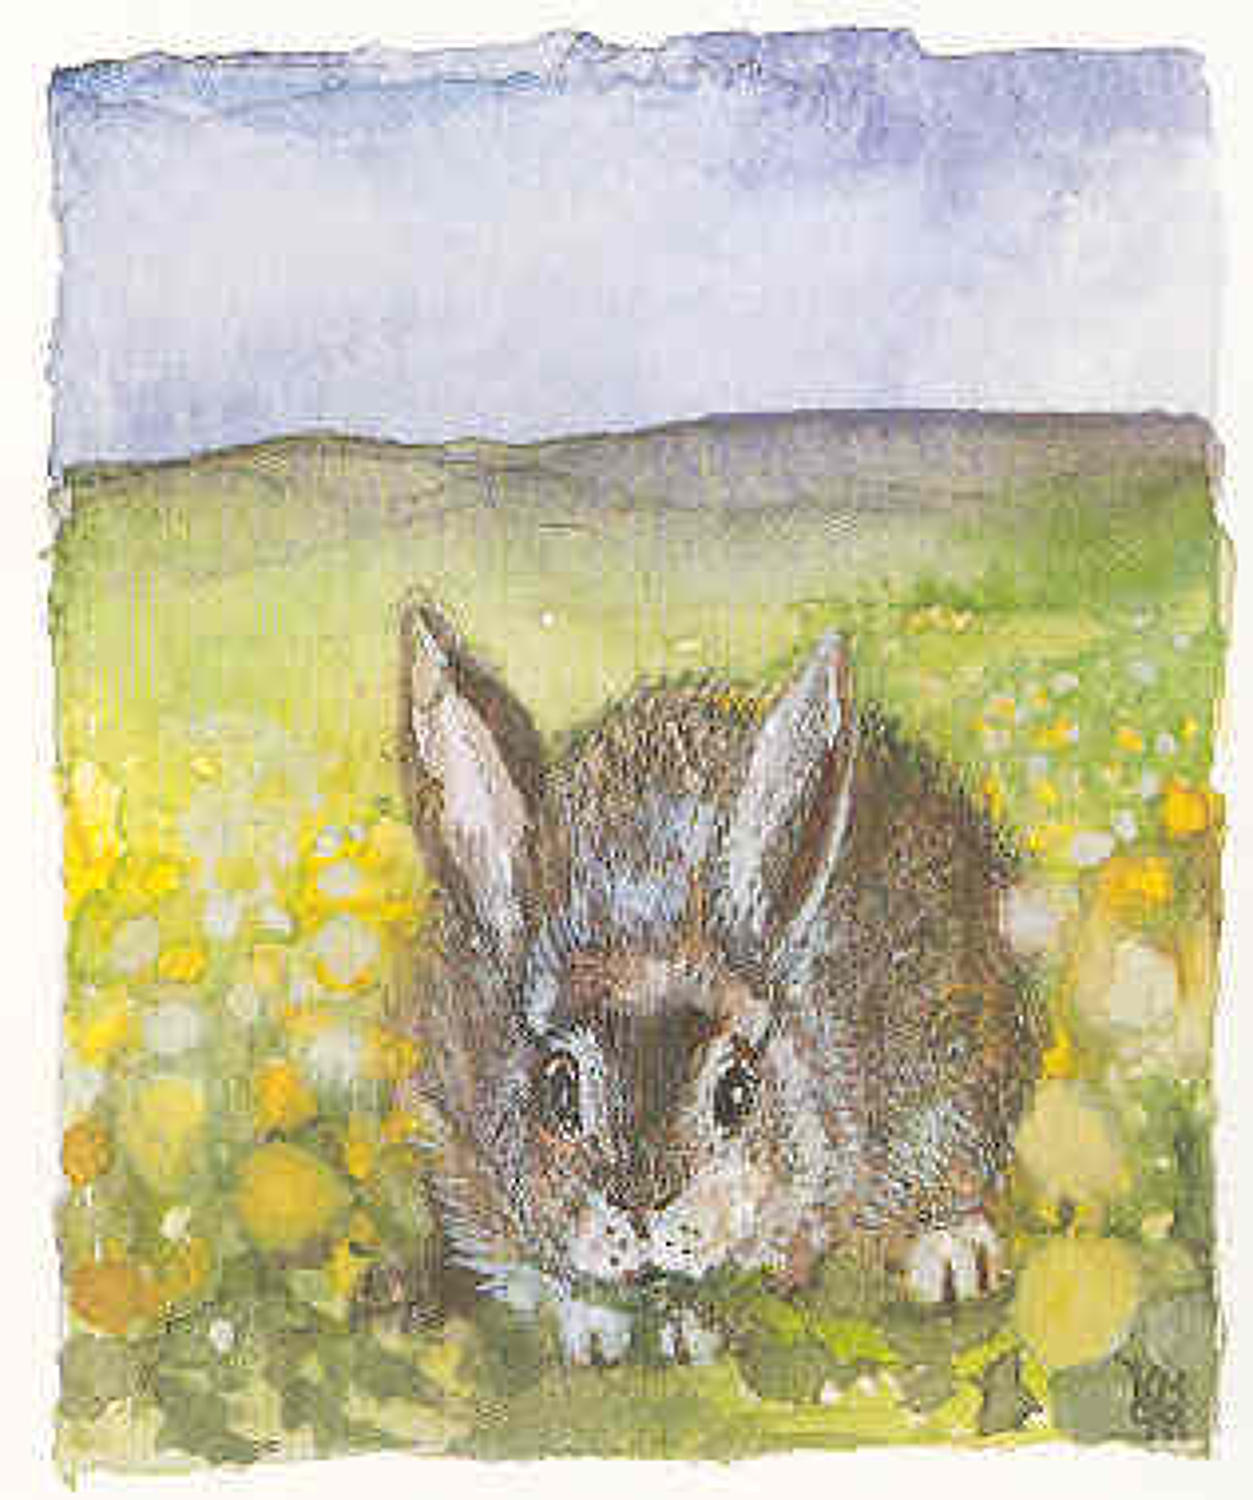 Rabbit in heaven in a field of dandelions